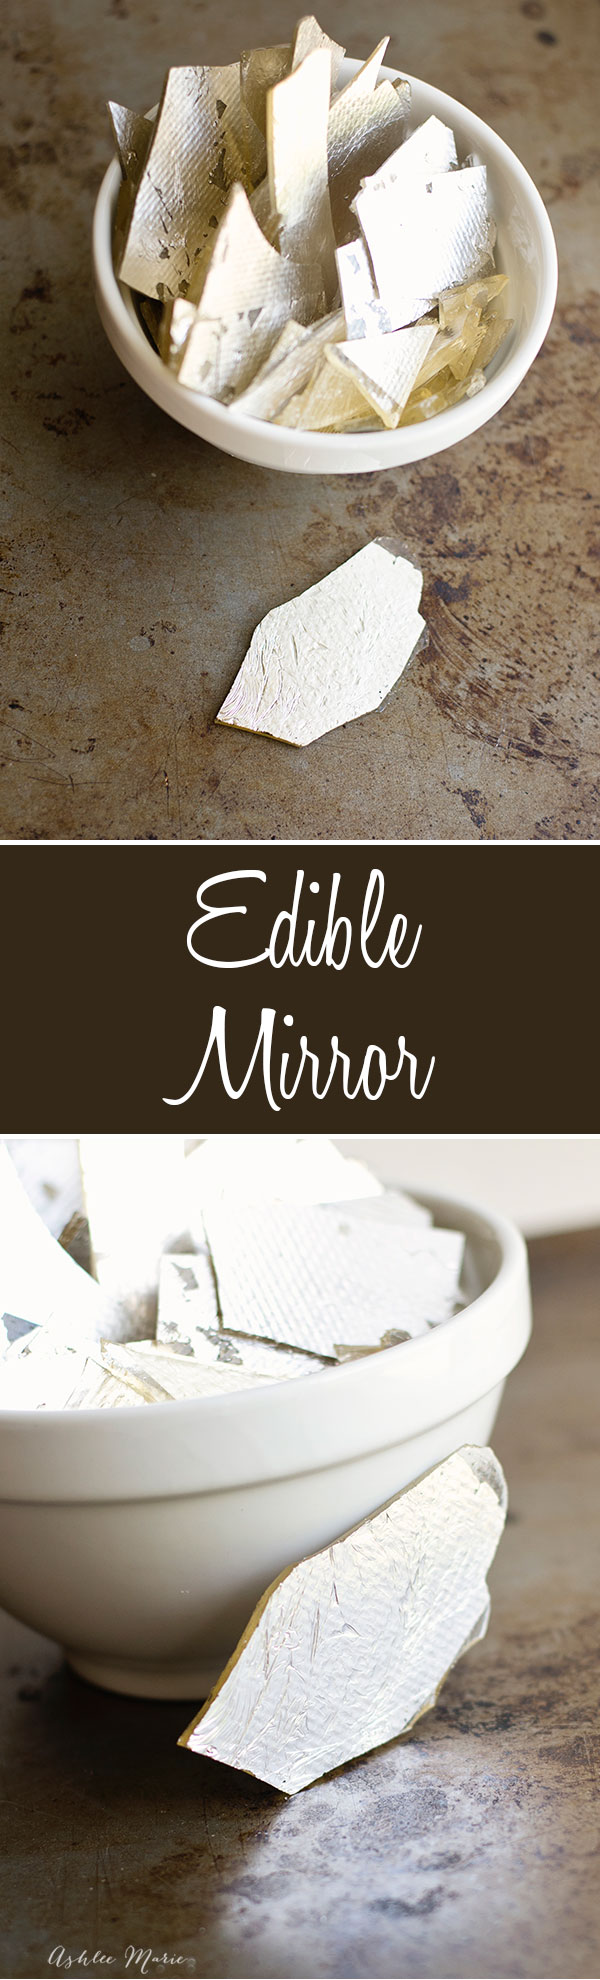 a easy recipe and video tutorial to create edible mirrors.